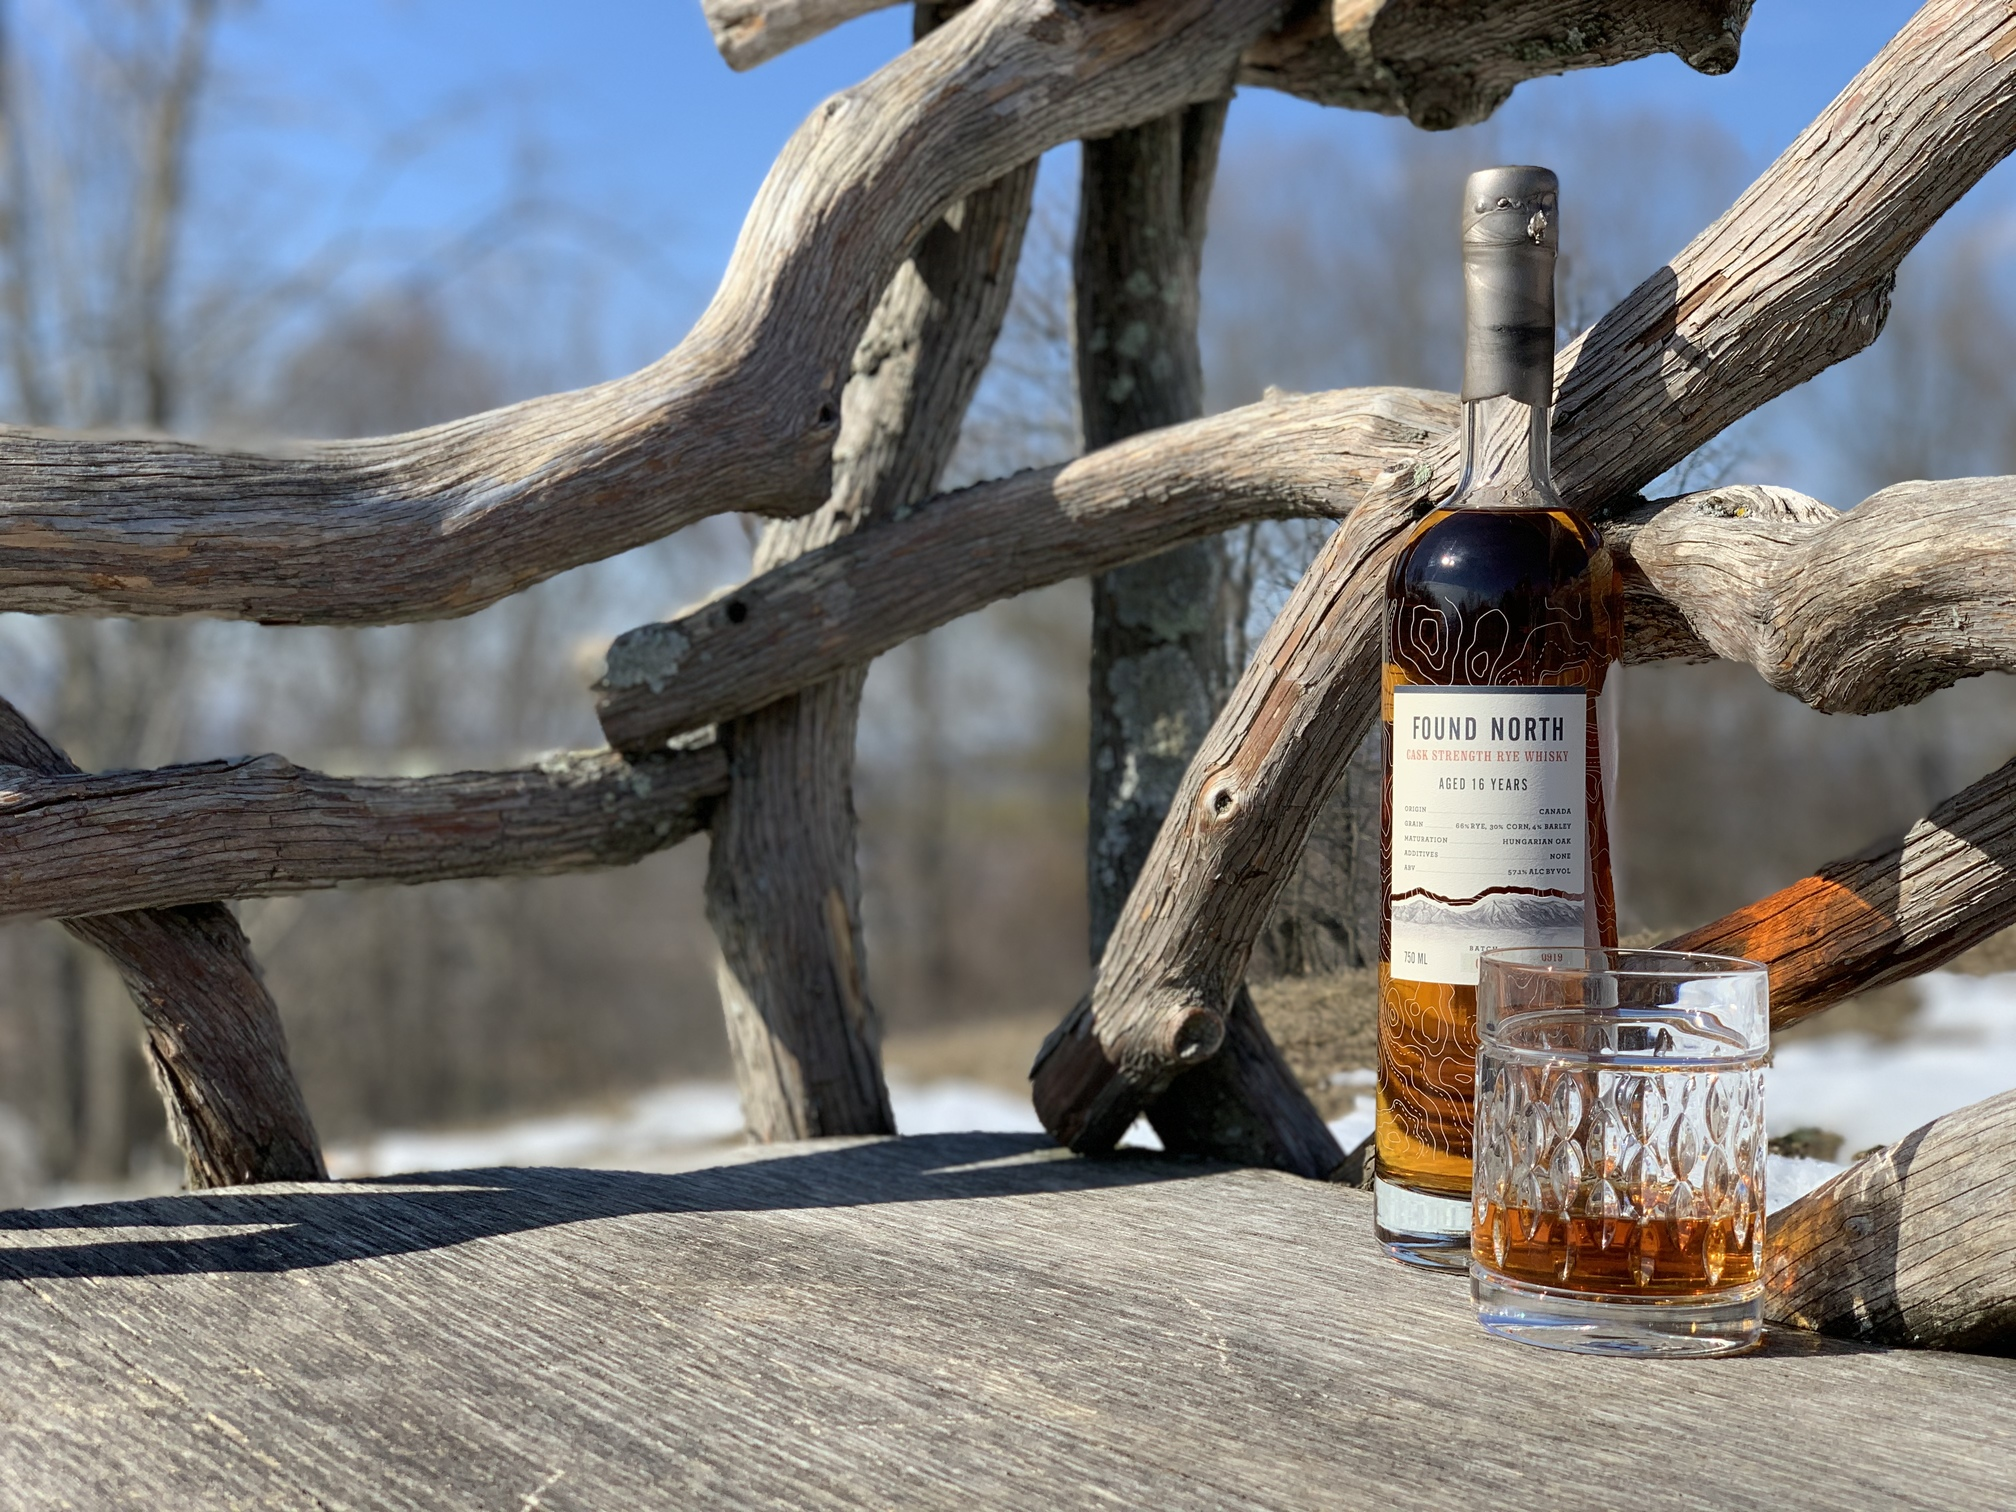 Thumbnail image of Found North Batch 001 Cask Strength Rye Whisky on a bench